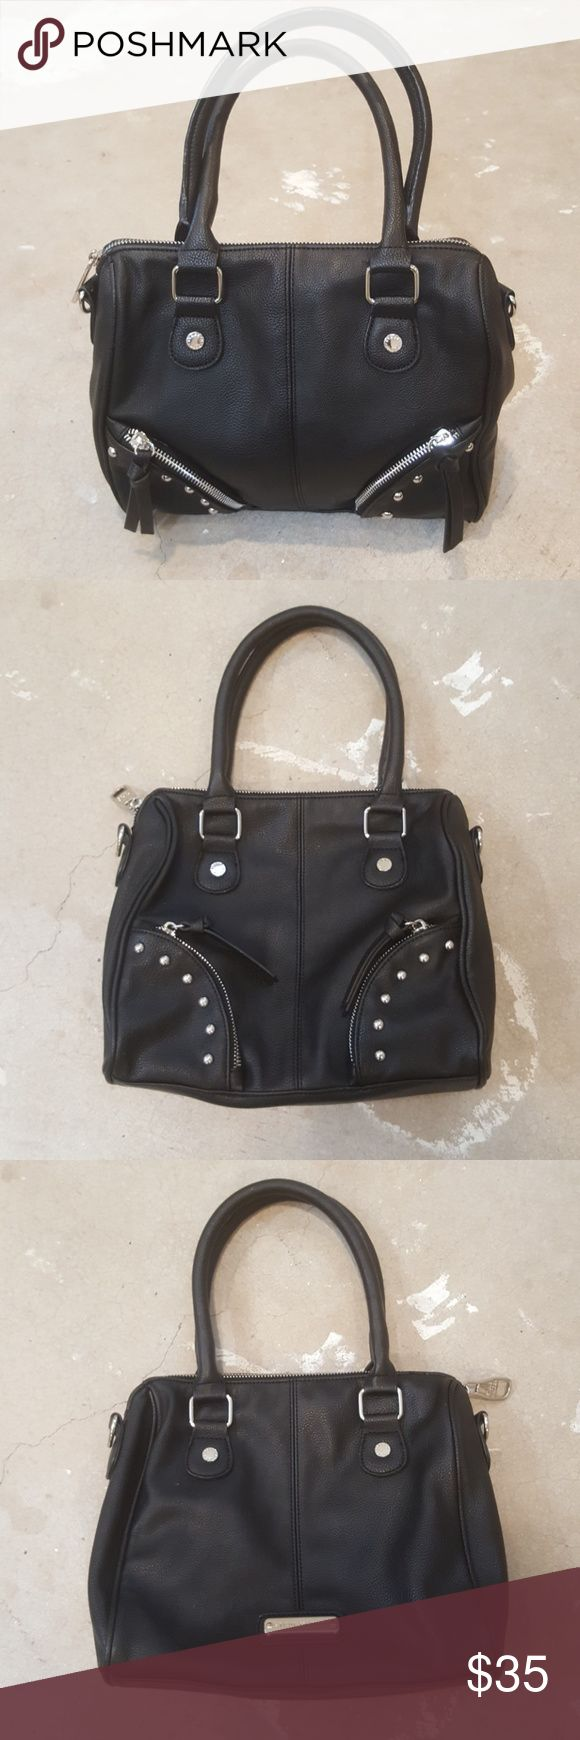 """Small Steve Madden Black Tote Bag I am selling a chic and simple Steve Madden Tote.  This is a small size and works perfectly as a """"night out tote"""".  I love the black and silver color combo and the small stud embellishments on the front of this bag.  It is in overall excellent condition with minimal wear here and there, no rips or stains. I do not have the long crossbody strap as I always carried on my forearm.  This silhouette is quite popular among fashion bloggers, scoop up and be on…"""